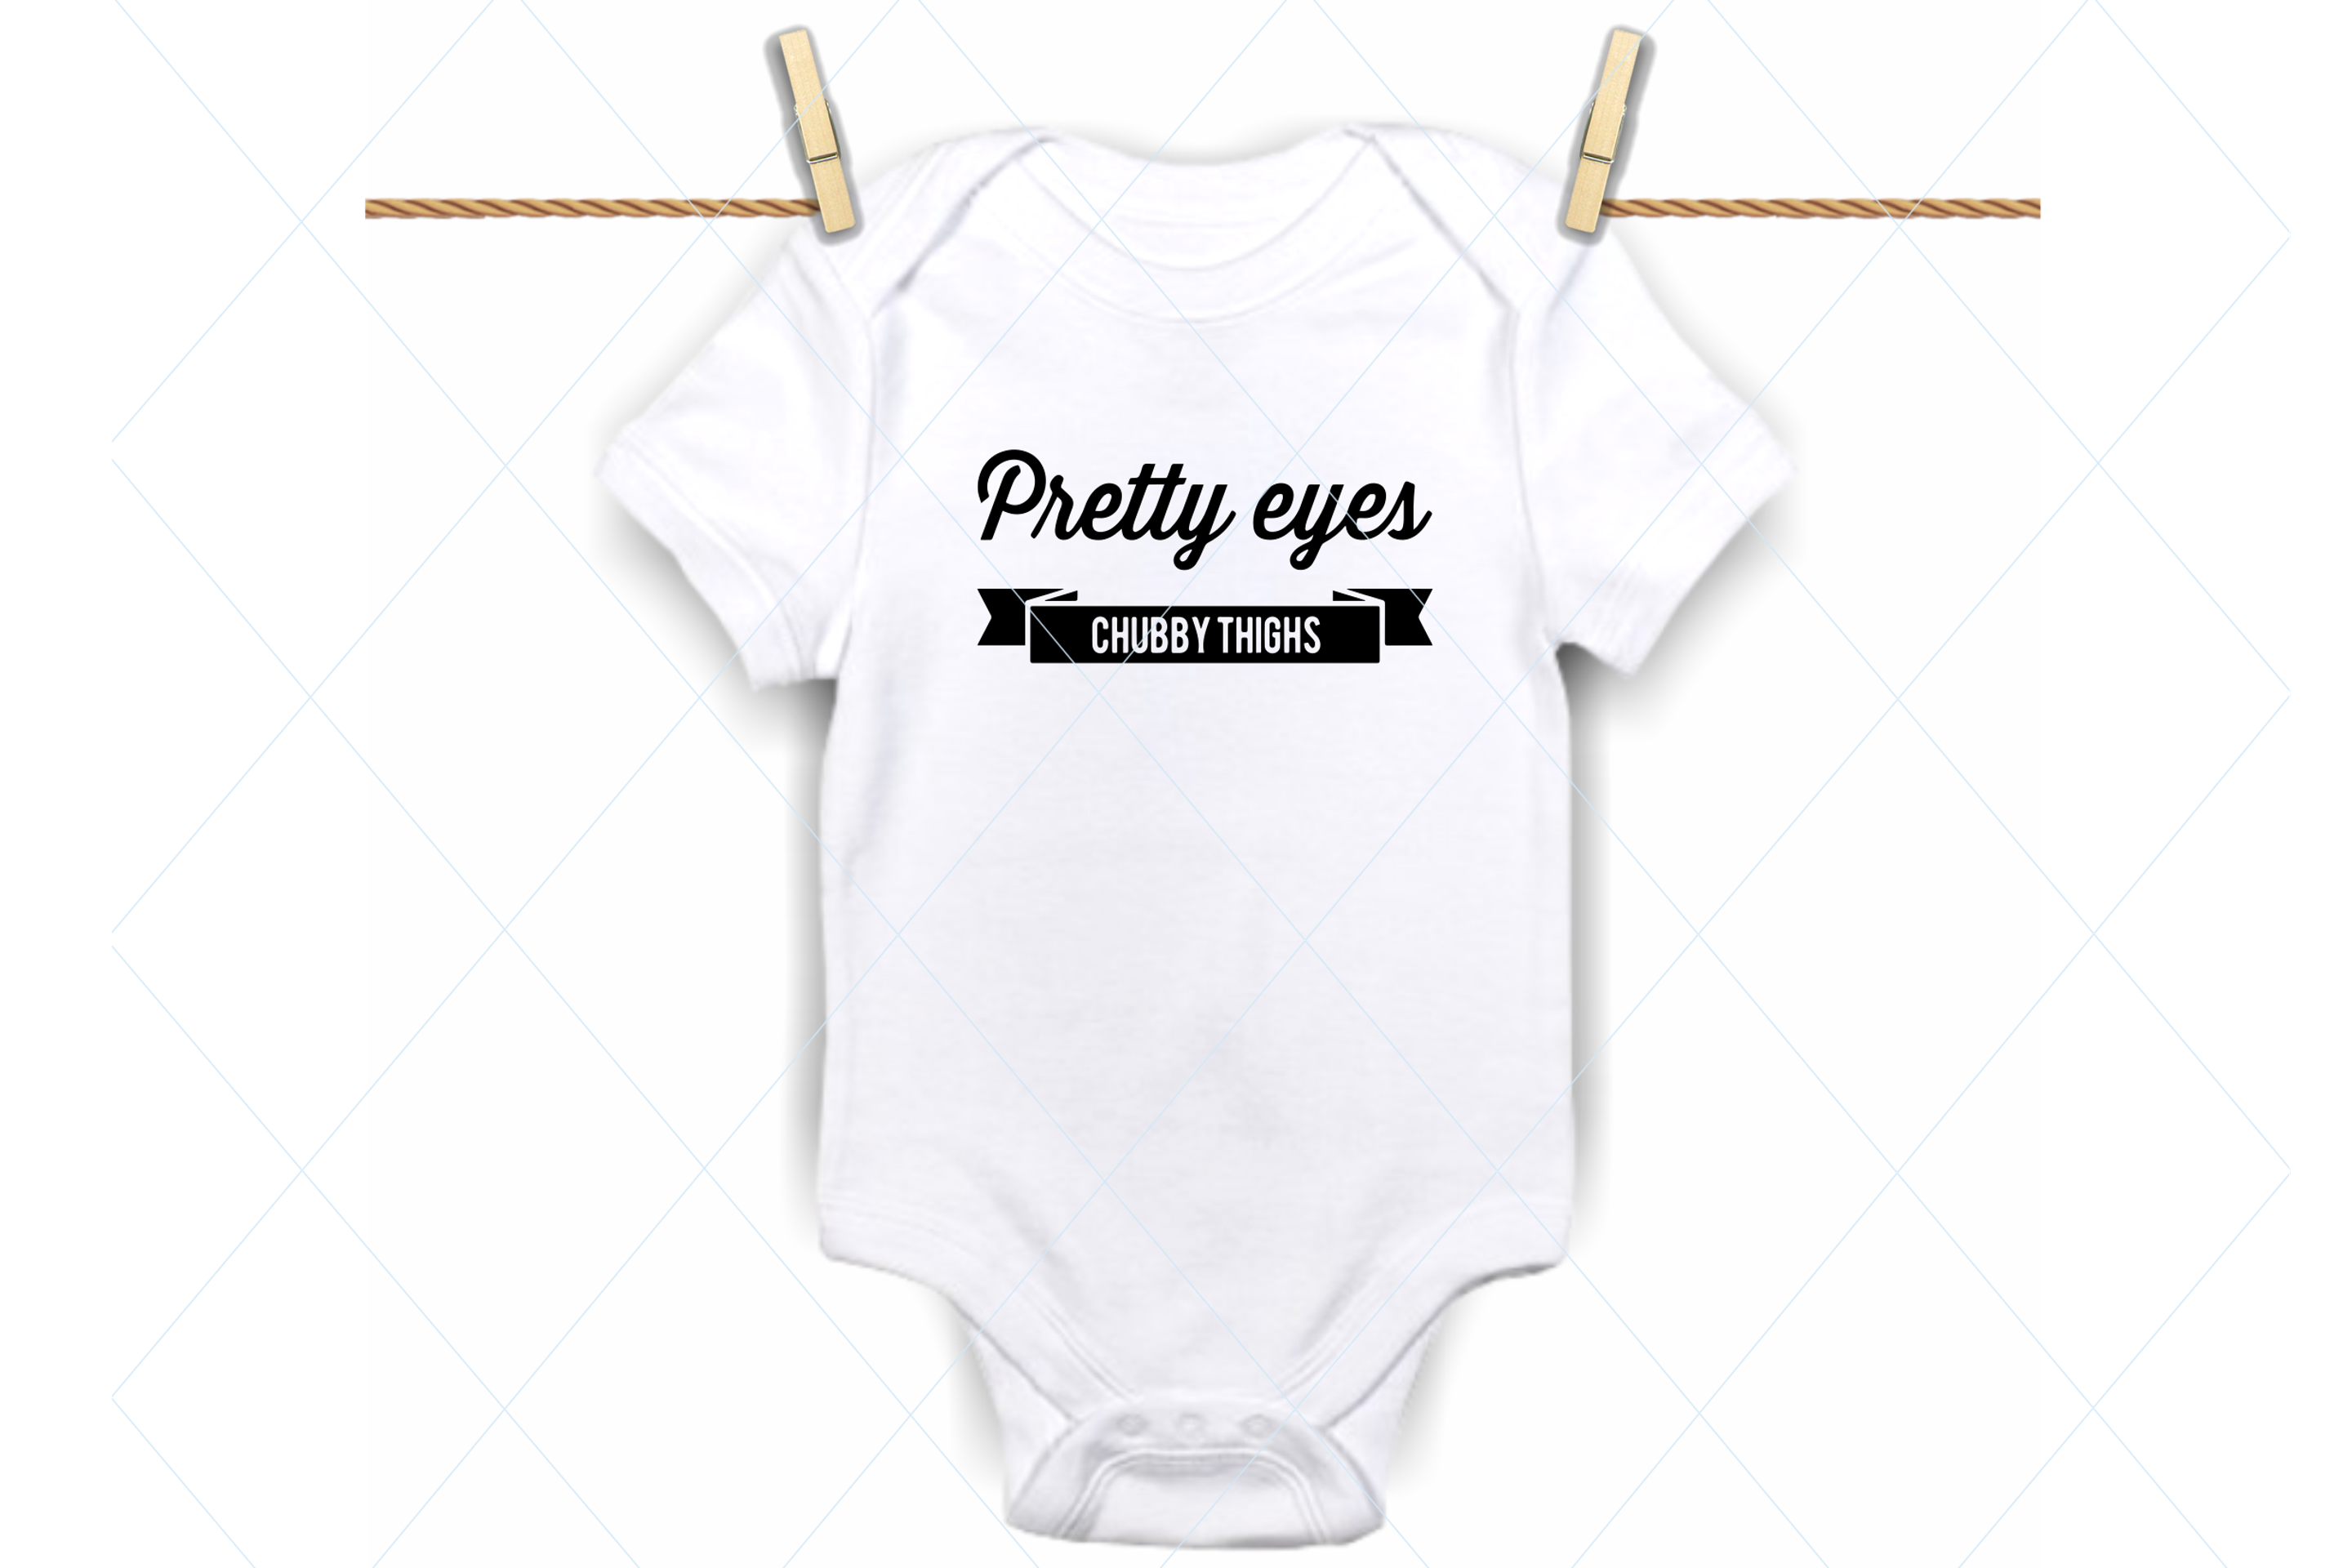 Download Free Pretty Eyes Chubby Thighs Onesie Svg Graphic By Thelovebyrds for Cricut Explore, Silhouette and other cutting machines.